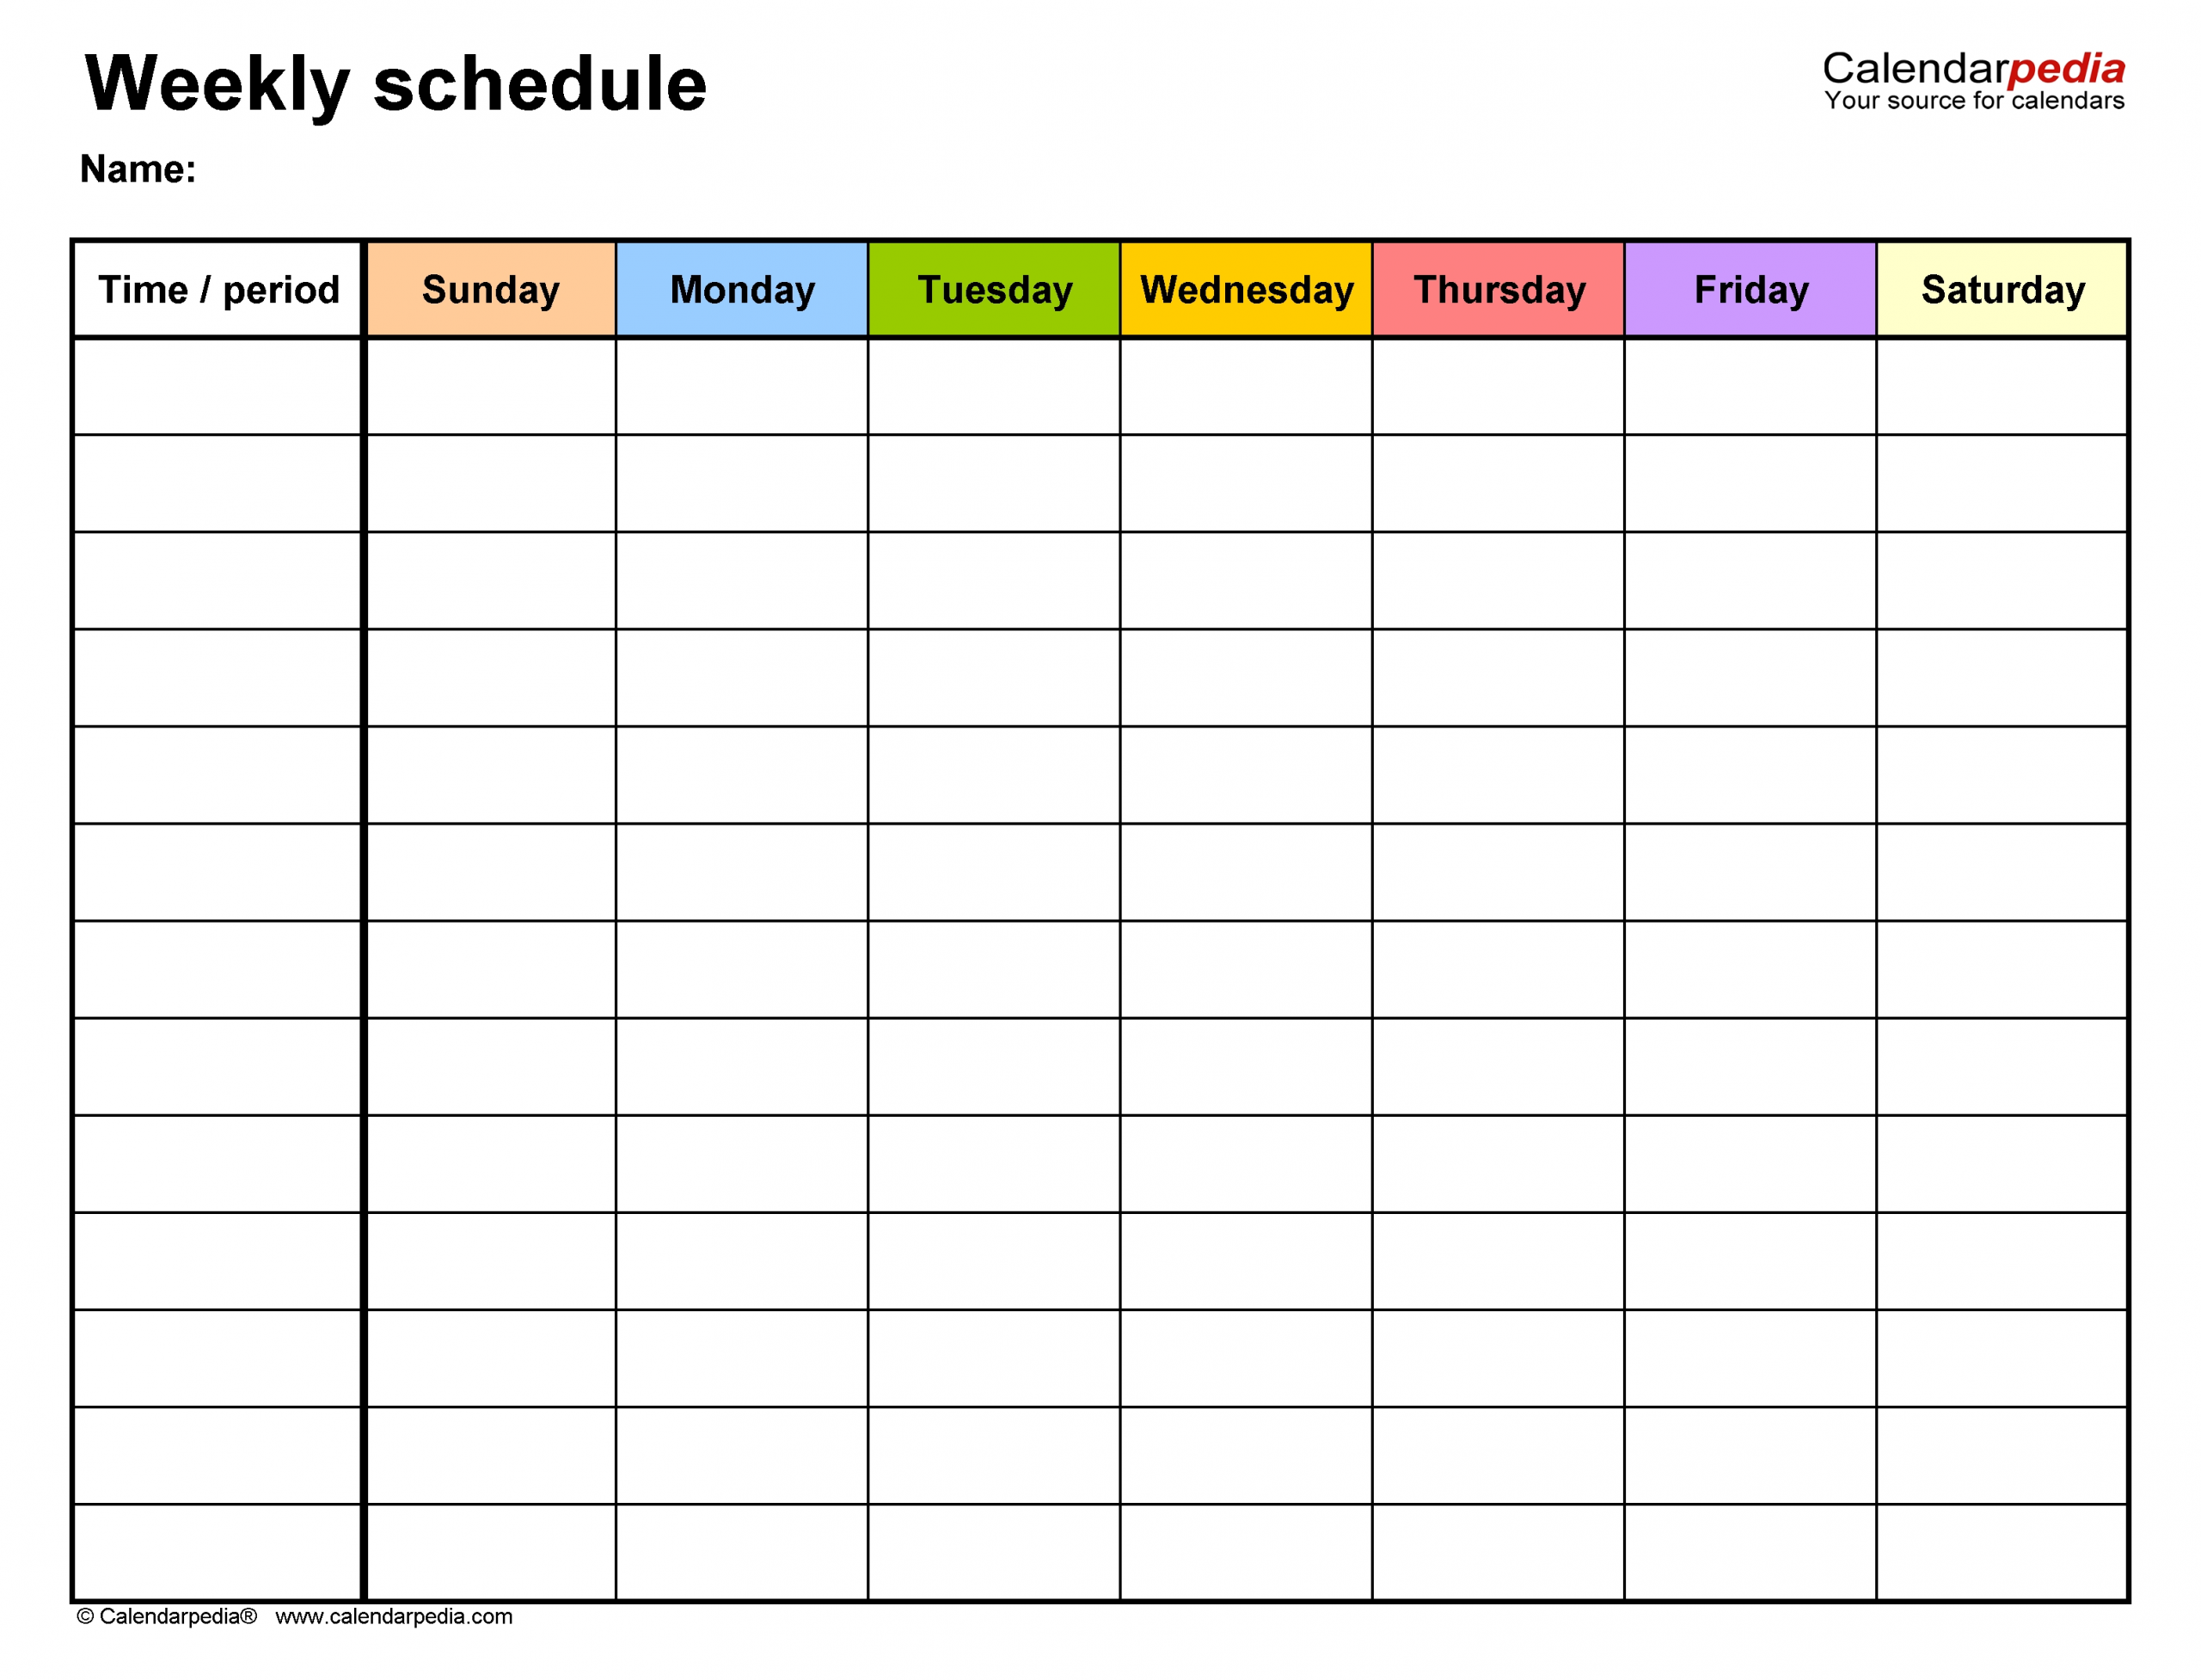 Free Weekly Schedule Templates For Word - 18 Templates  7 Day Calendar